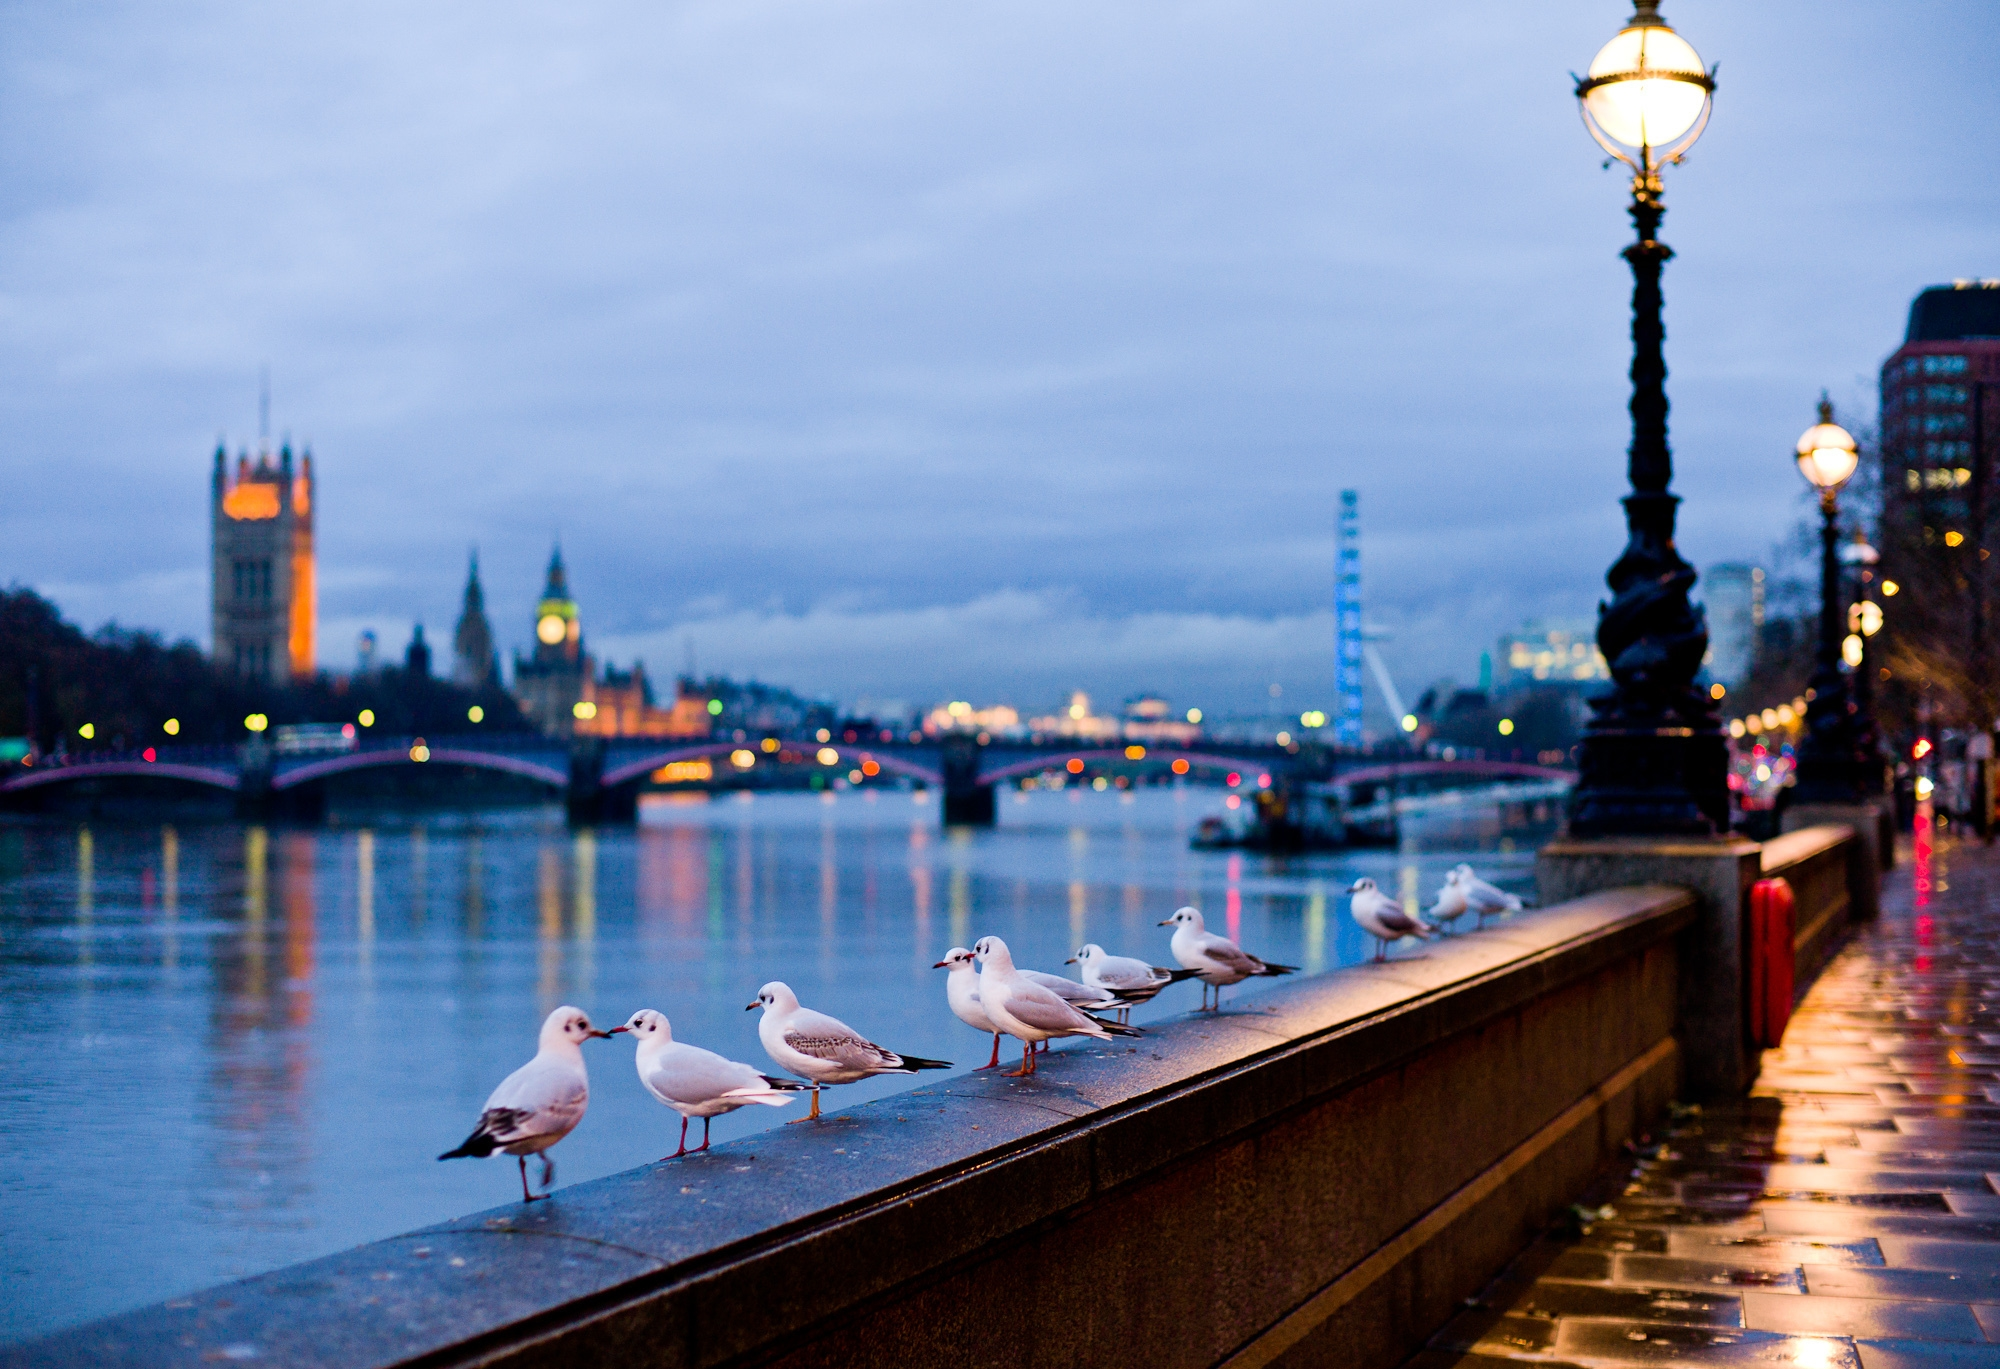 147035 download wallpaper Cities, Rivers, Seagulls, London, City, Shine, Light, Lamp, Street, Bokeh, Boquet, Lamps, England screensavers and pictures for free